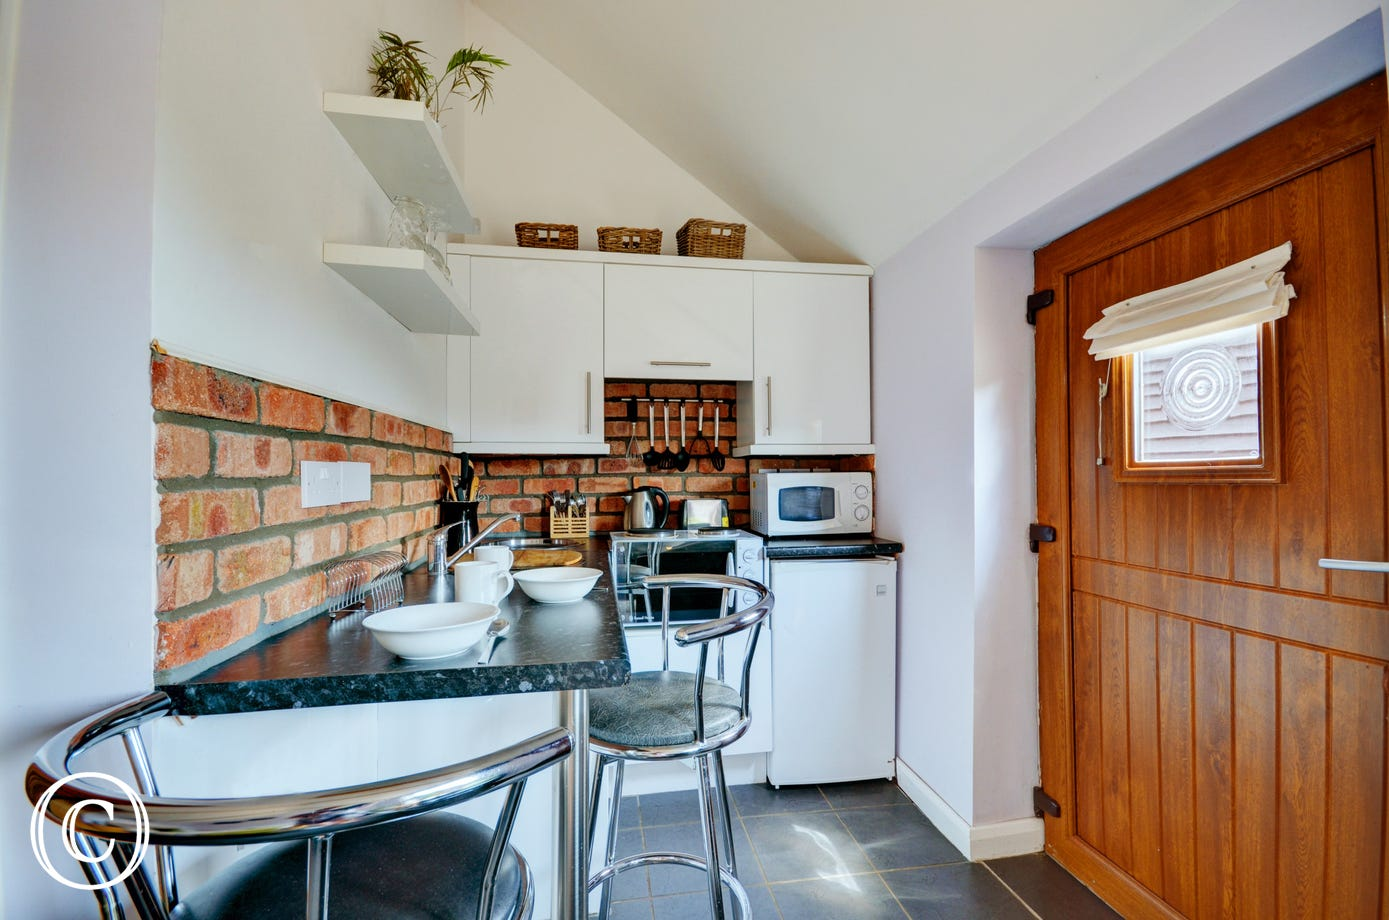 The compact kitchen area has an electric mini fan-assisted oven and two rings, full-size fridge with icebox, microwave and breakfast bar with two bar stools